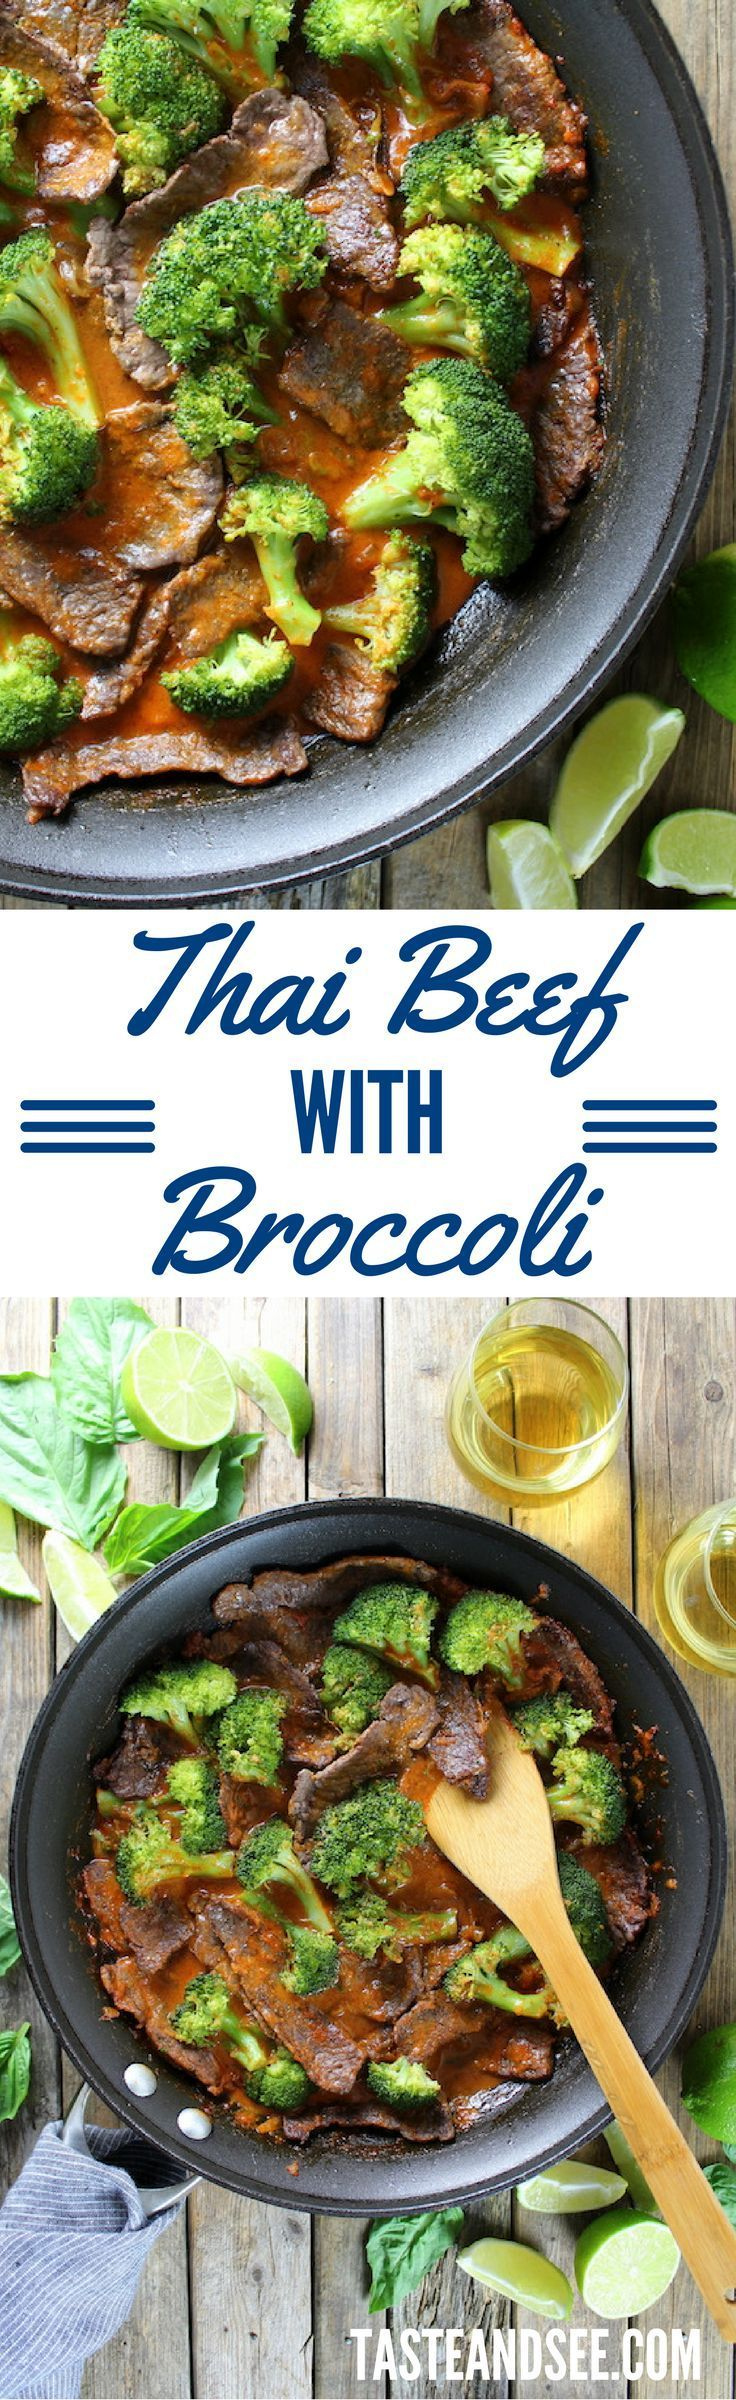 Thai Beef with Broccoli - With coconut milk, red curry paste, shallots, brown sugar, fish sauce, broccoli and beef.  http://tasteandsee.com